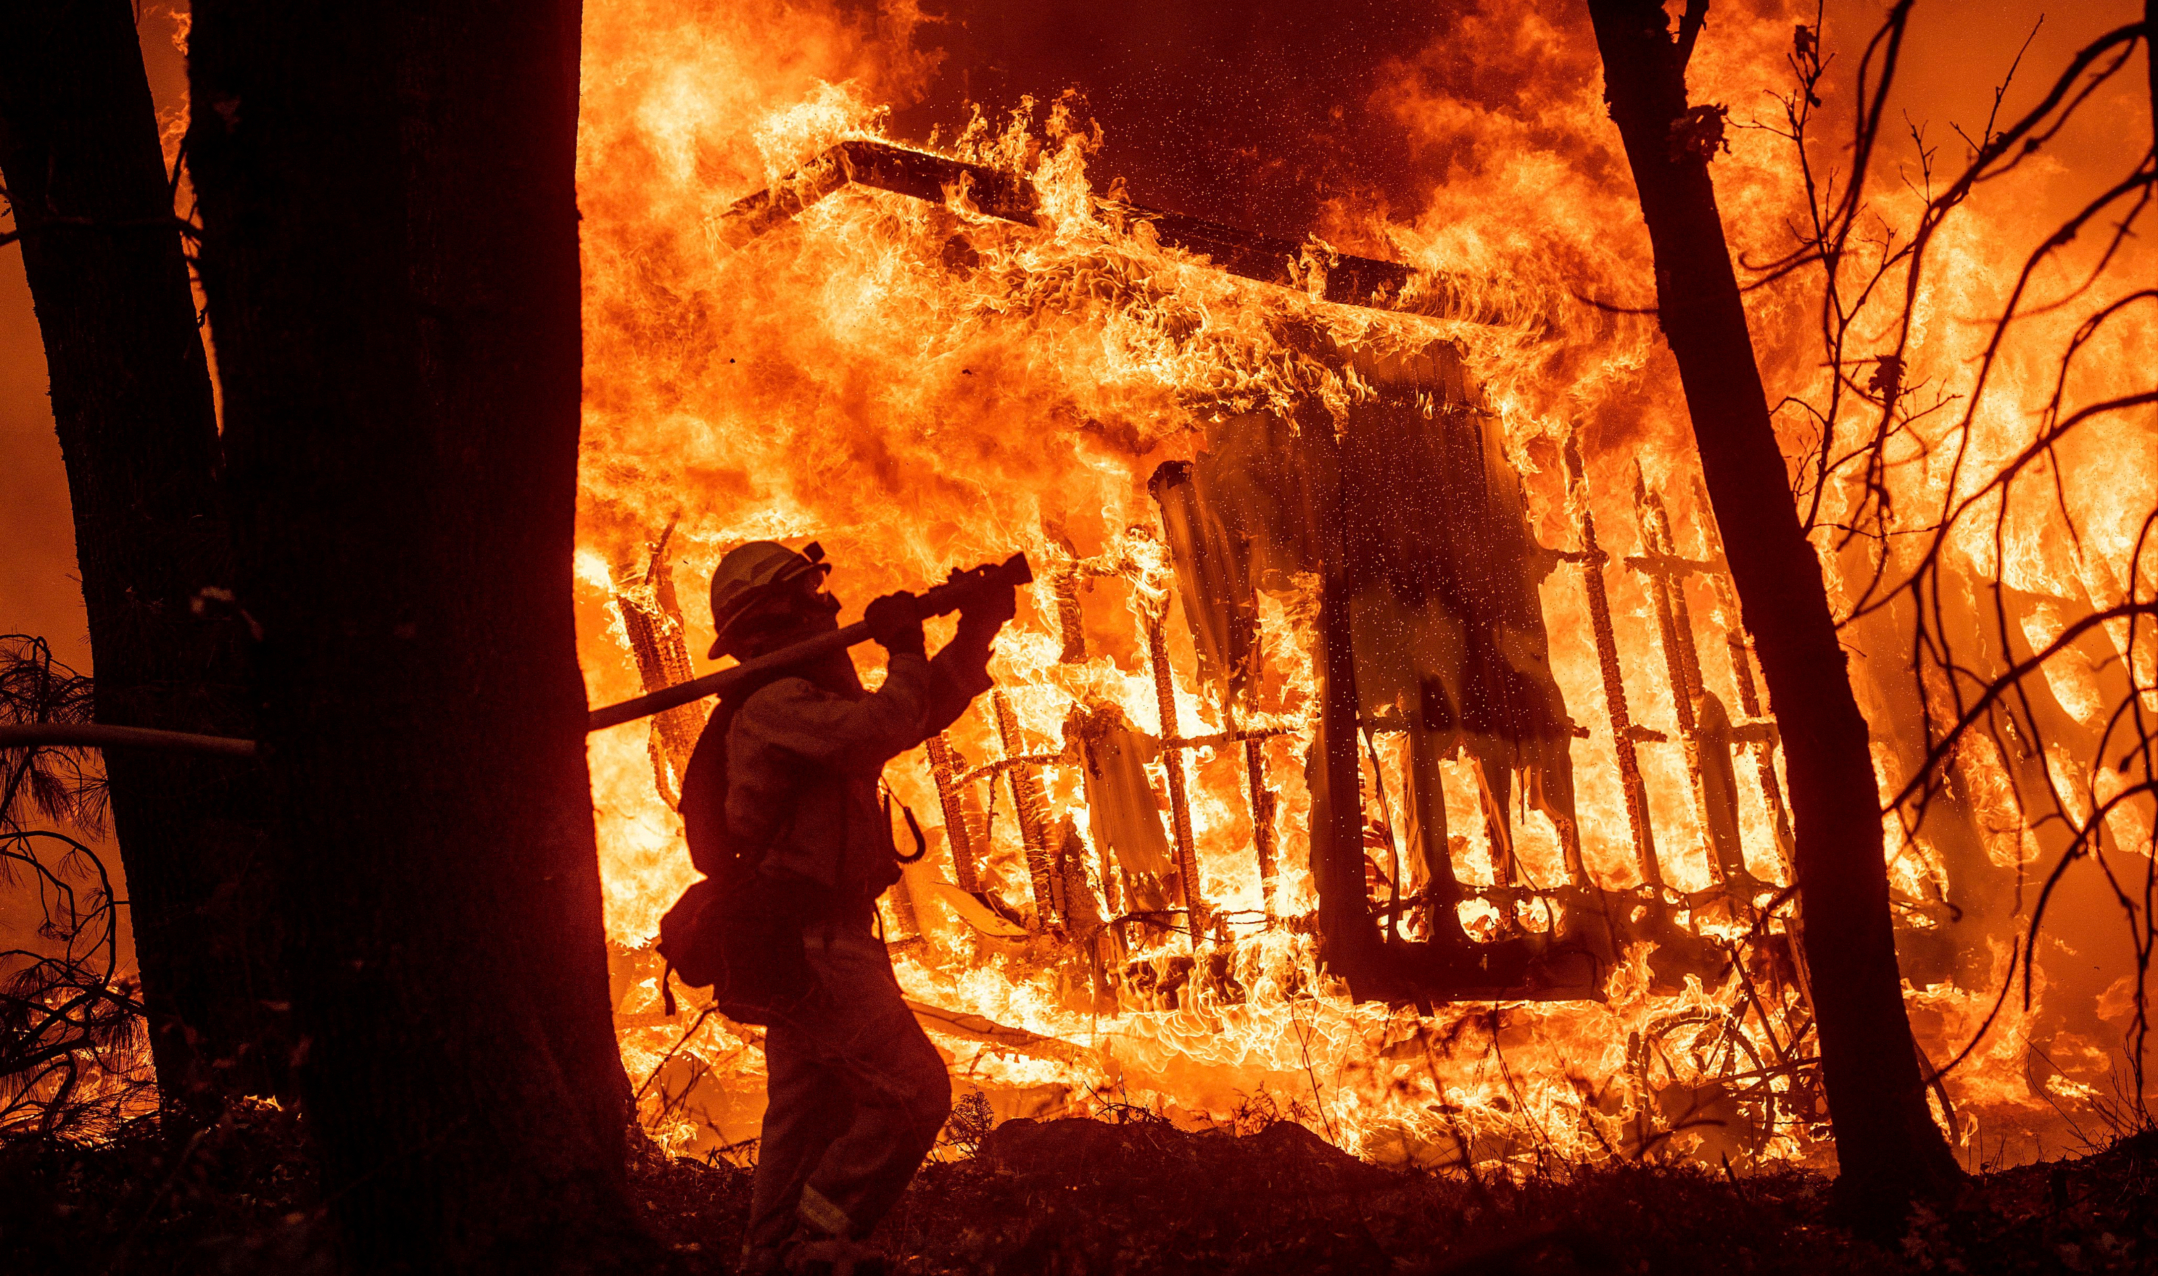 Firefighter Jose Corona sprays water as flames from the Camp Fire consume a home in Magalia, Calif., on Nov. 9, 2018. Photo by Noah Berger/AP